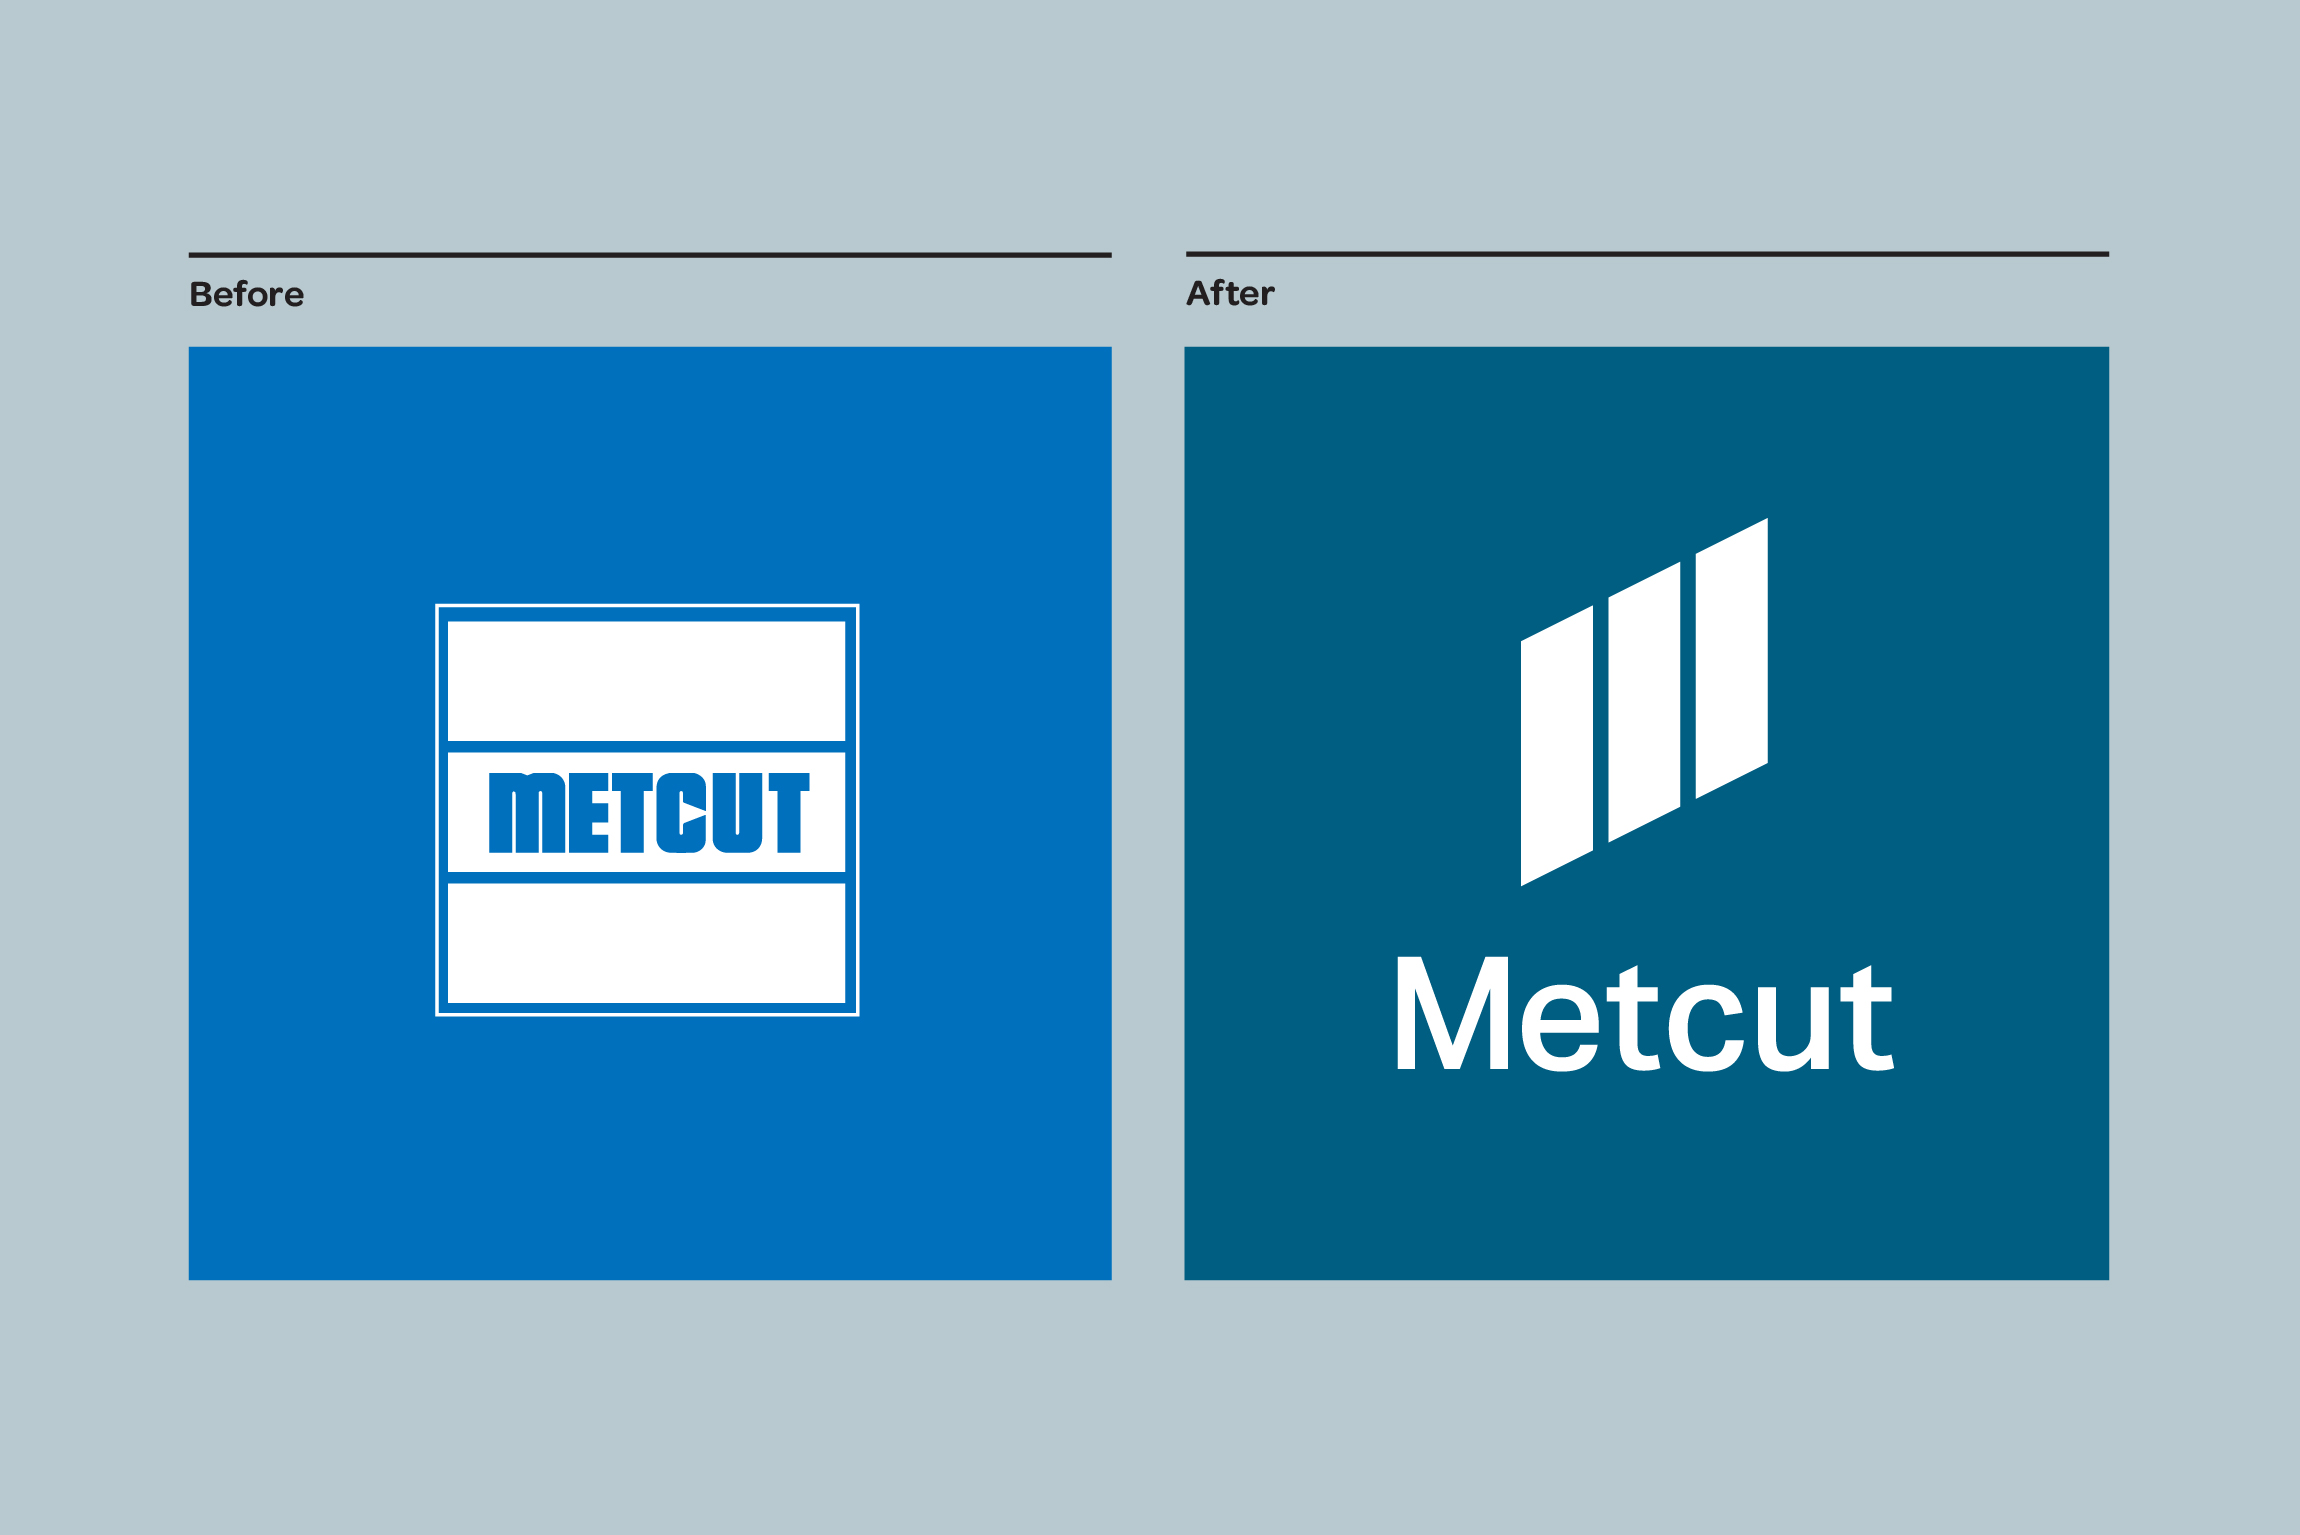 Before and After of the Metcut Logo